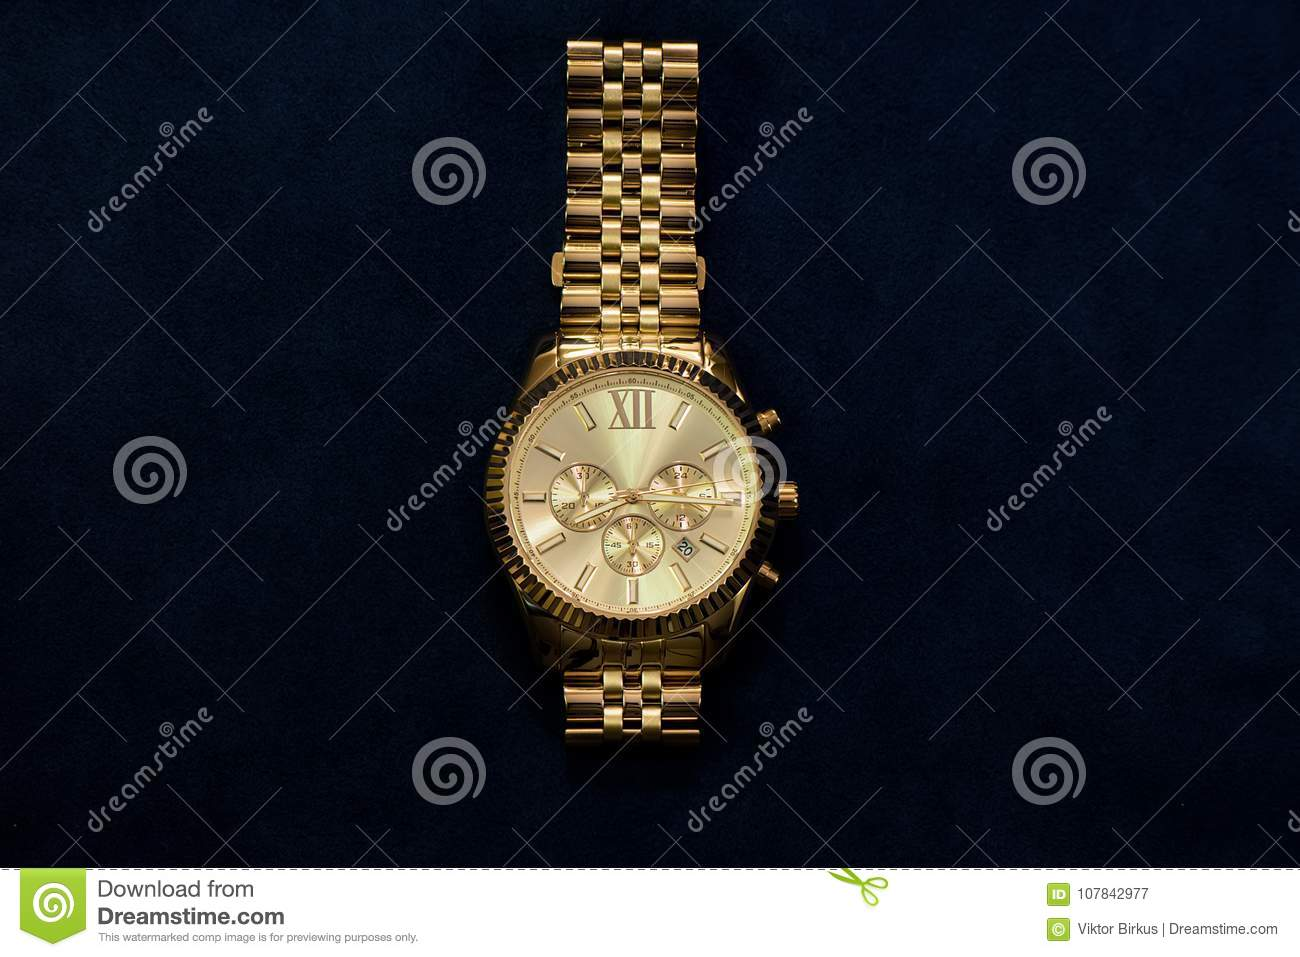 Gold wristwatch with a yellow metal bracelet on a dark blue back